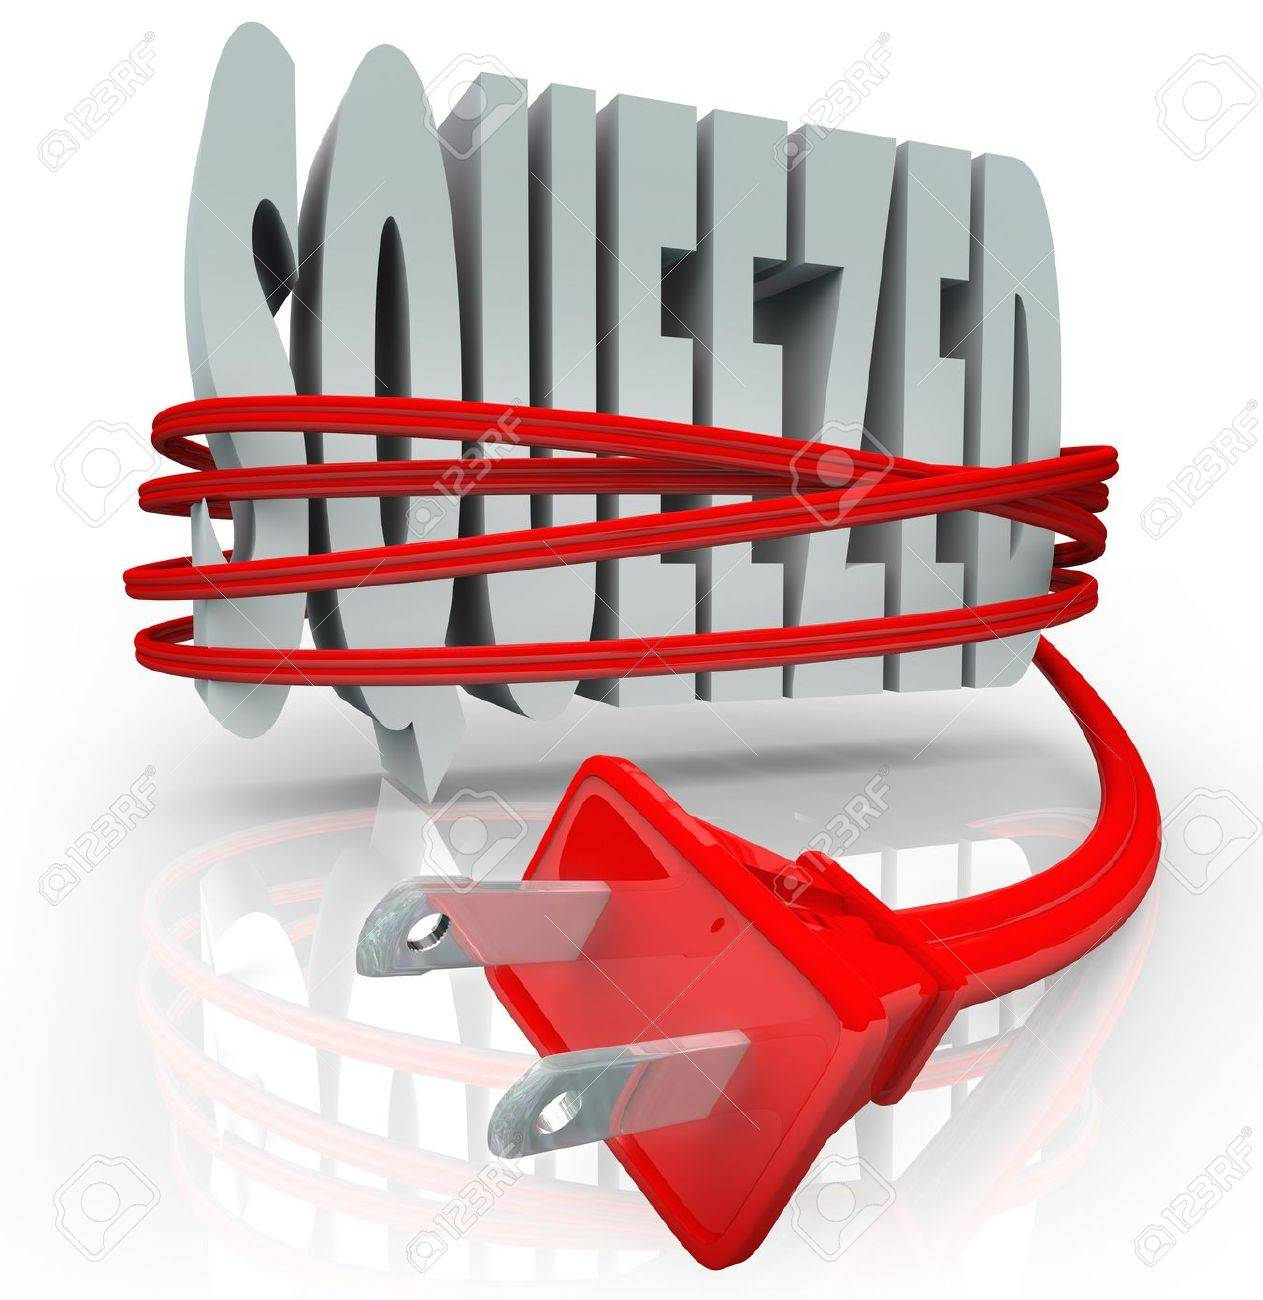 The word Squeezed is strangled by a red electrical cord and plug to symbolize the inflation effects of rising energy and power costs on a household or business budget Stock Photo - 16802269